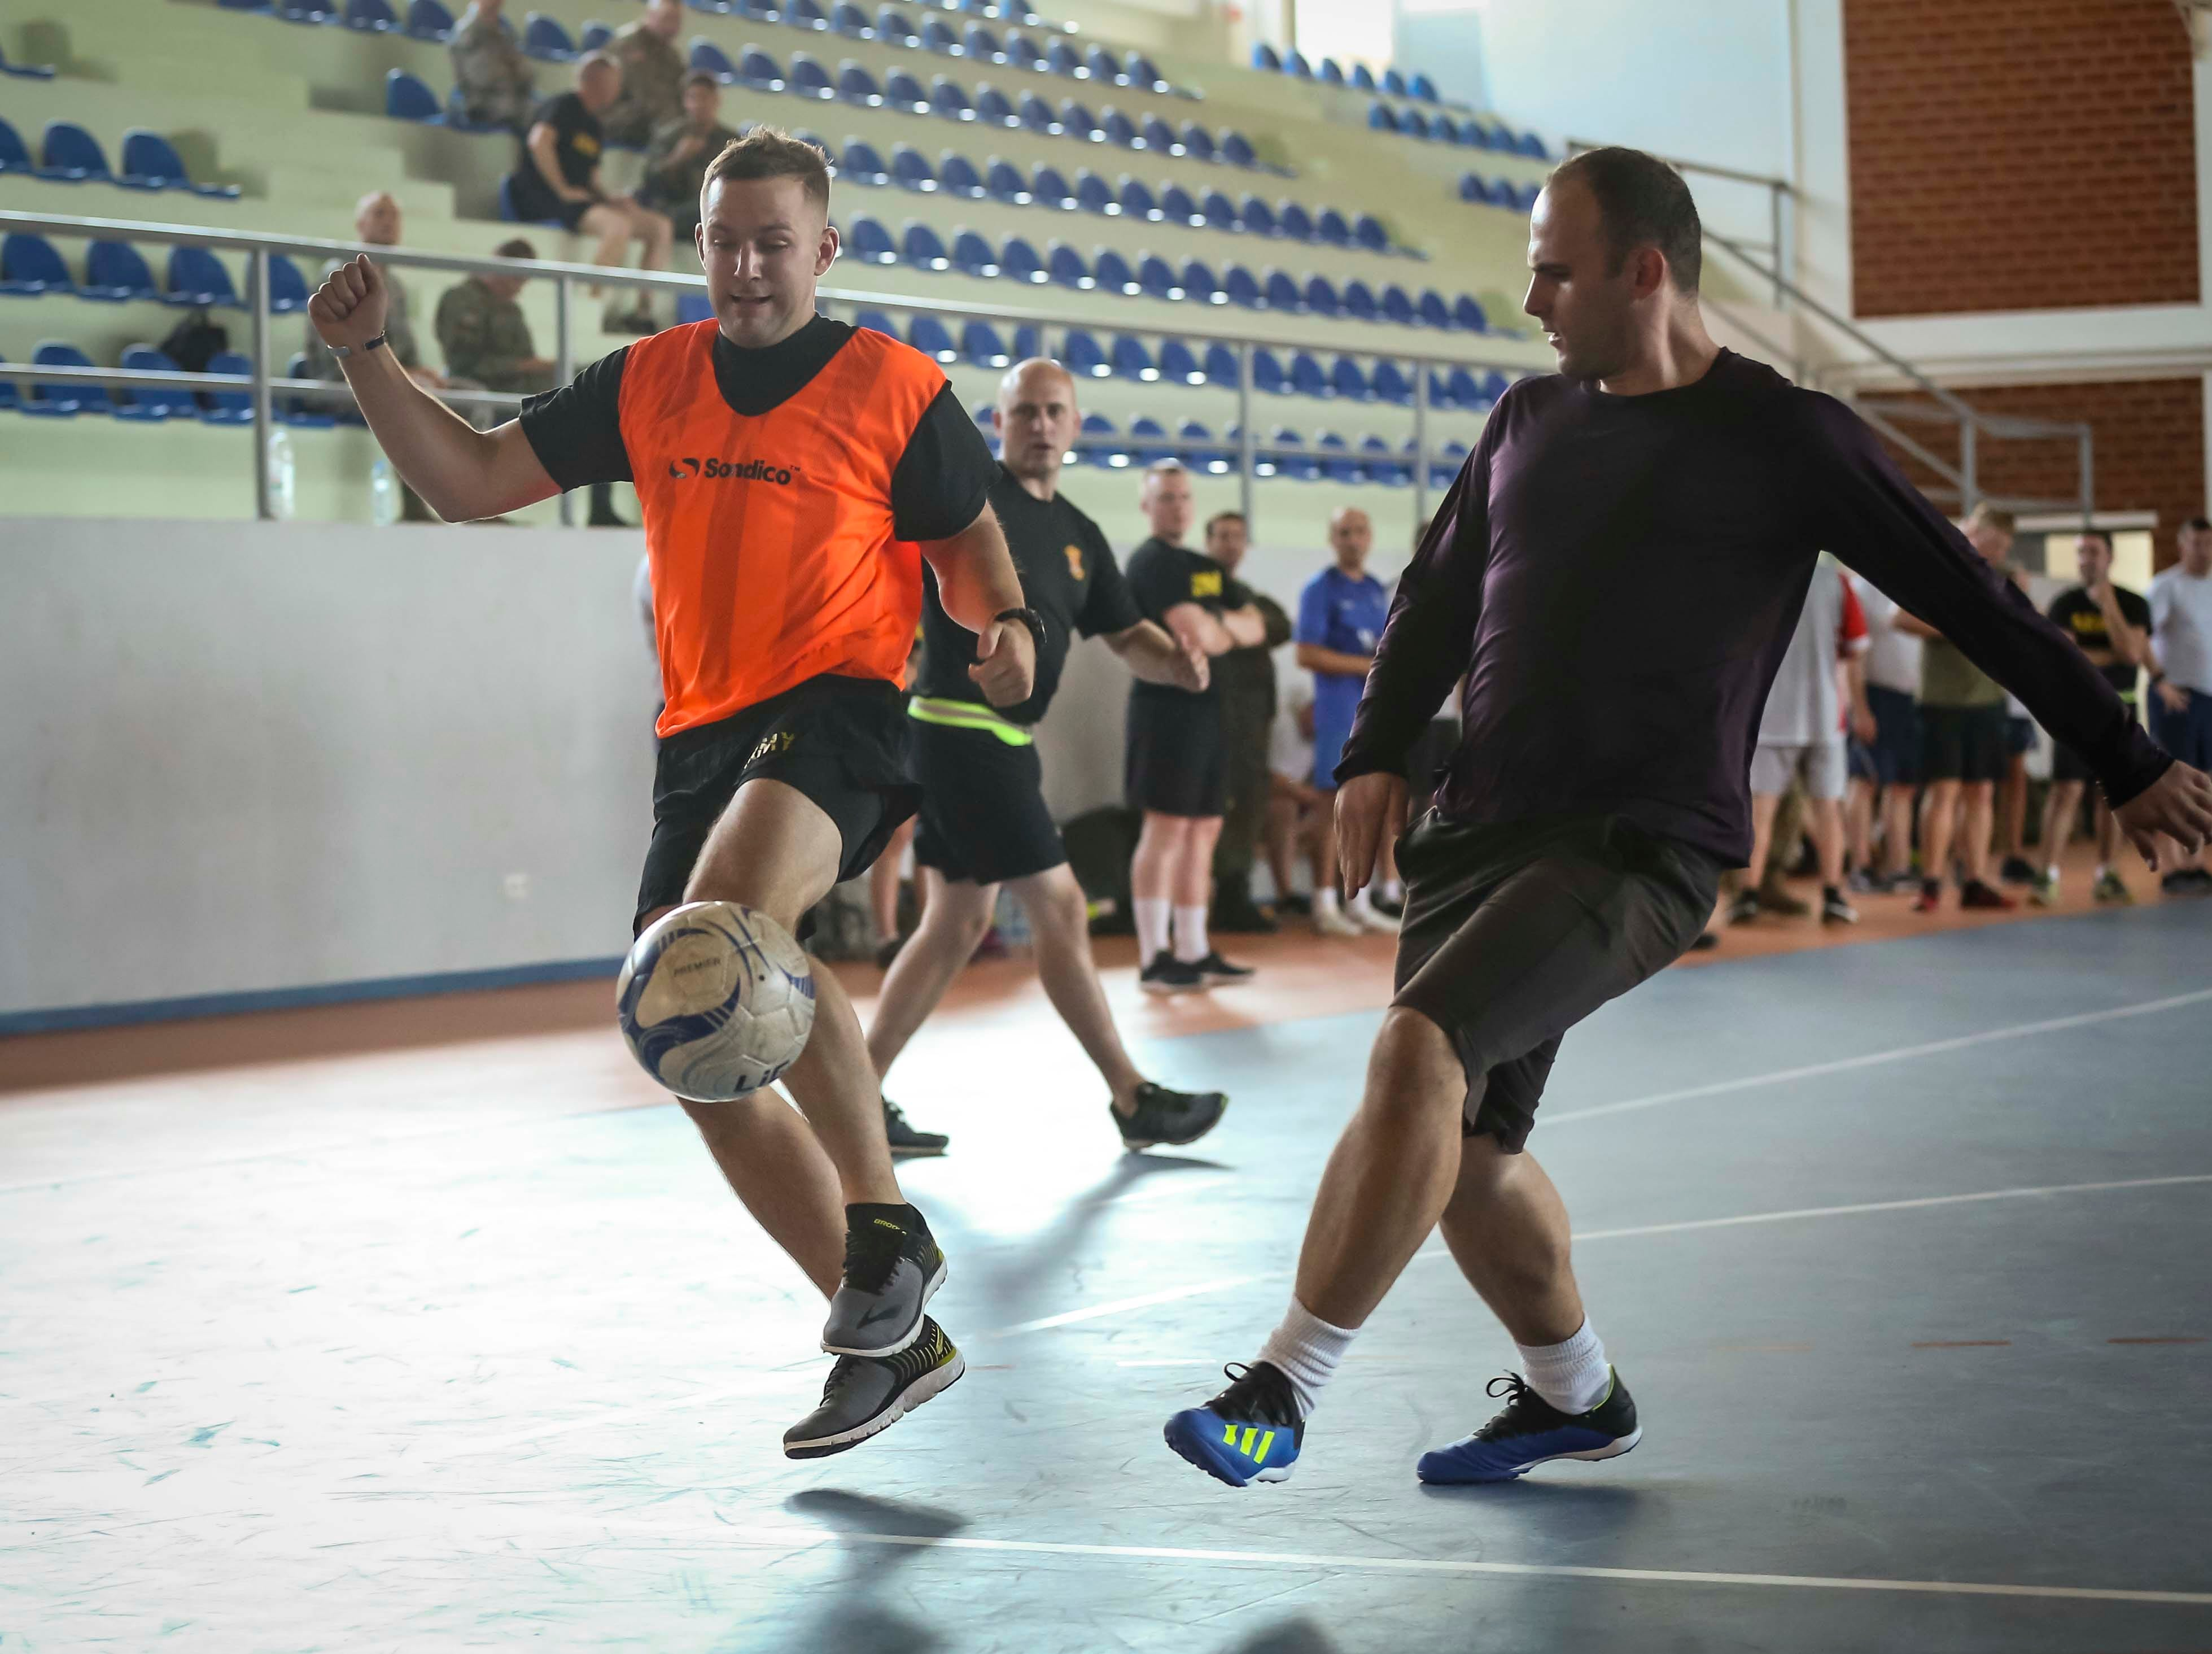 Members of the Iowa National Guard play indoor soccer with members of the Kosovo Security Force at their base near Pristina, Kosovo in Sept. 2018.